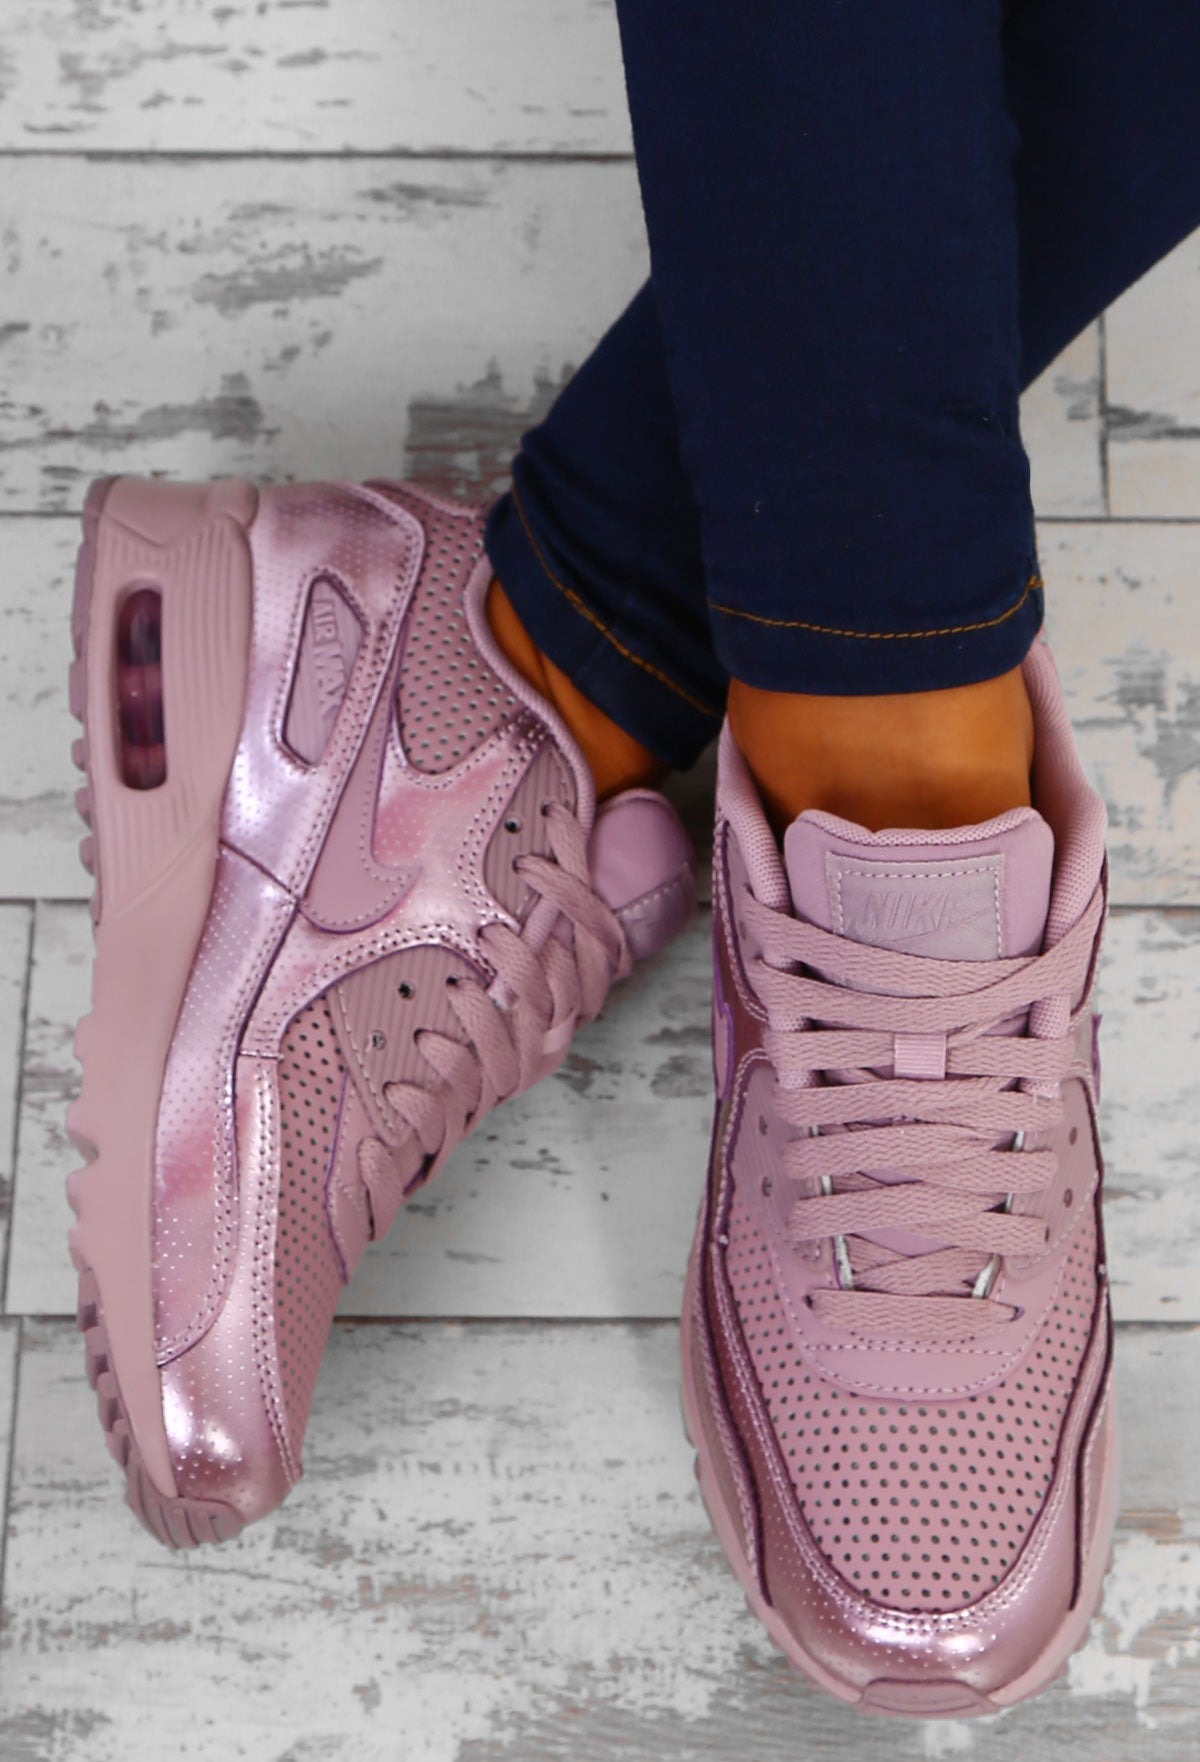 Nike Air Max 90 SE Elemental Rose Trainers – Pink Boutique UK